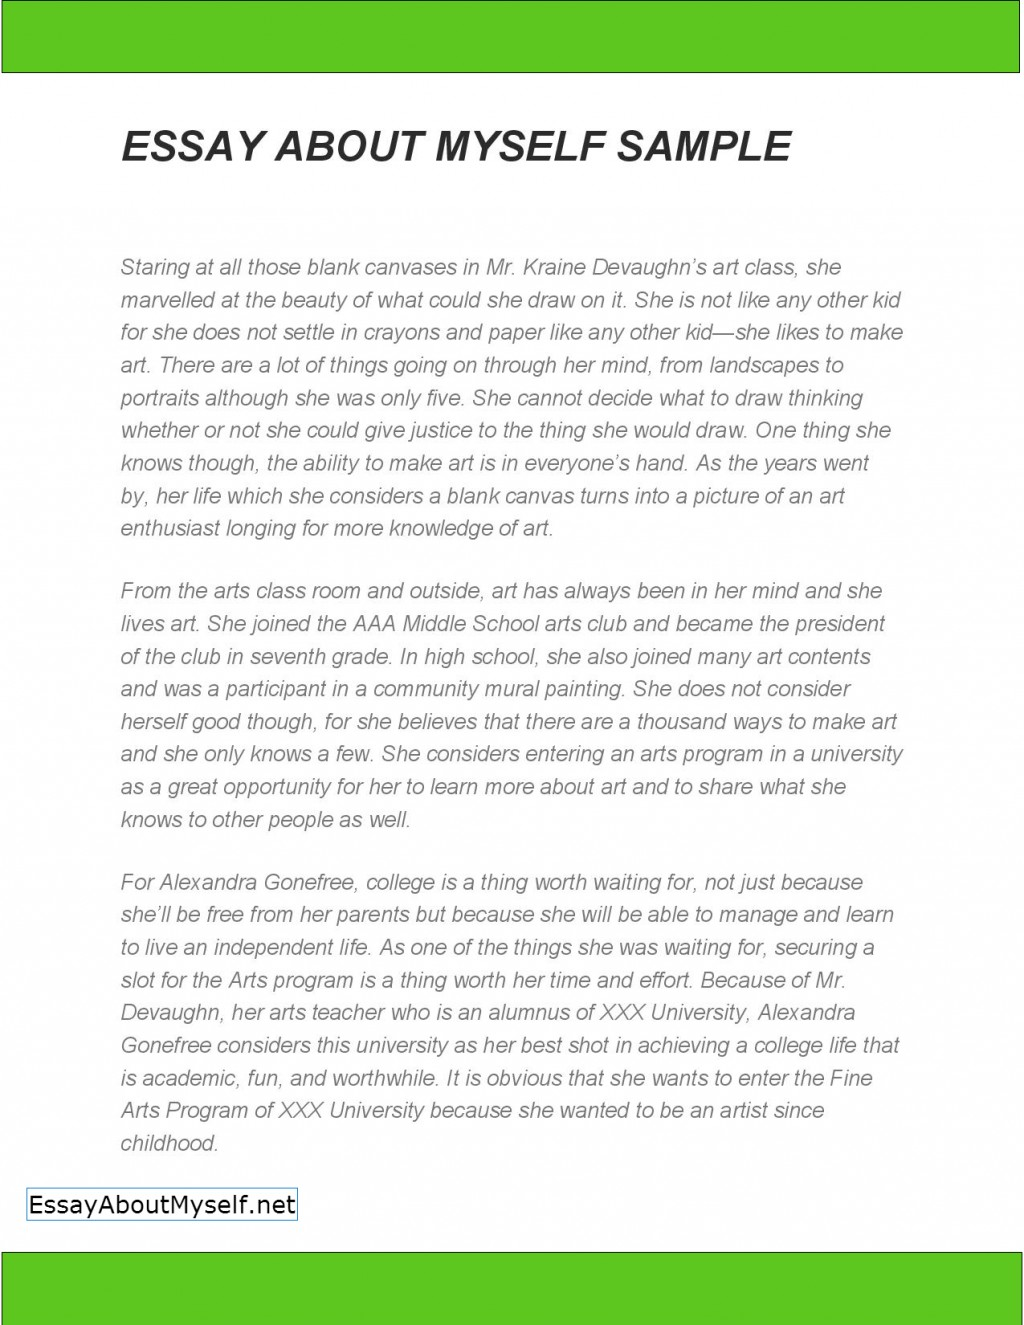 009 How To Start An Essay About Myself Example Unique Off Yourself For College A Job Large